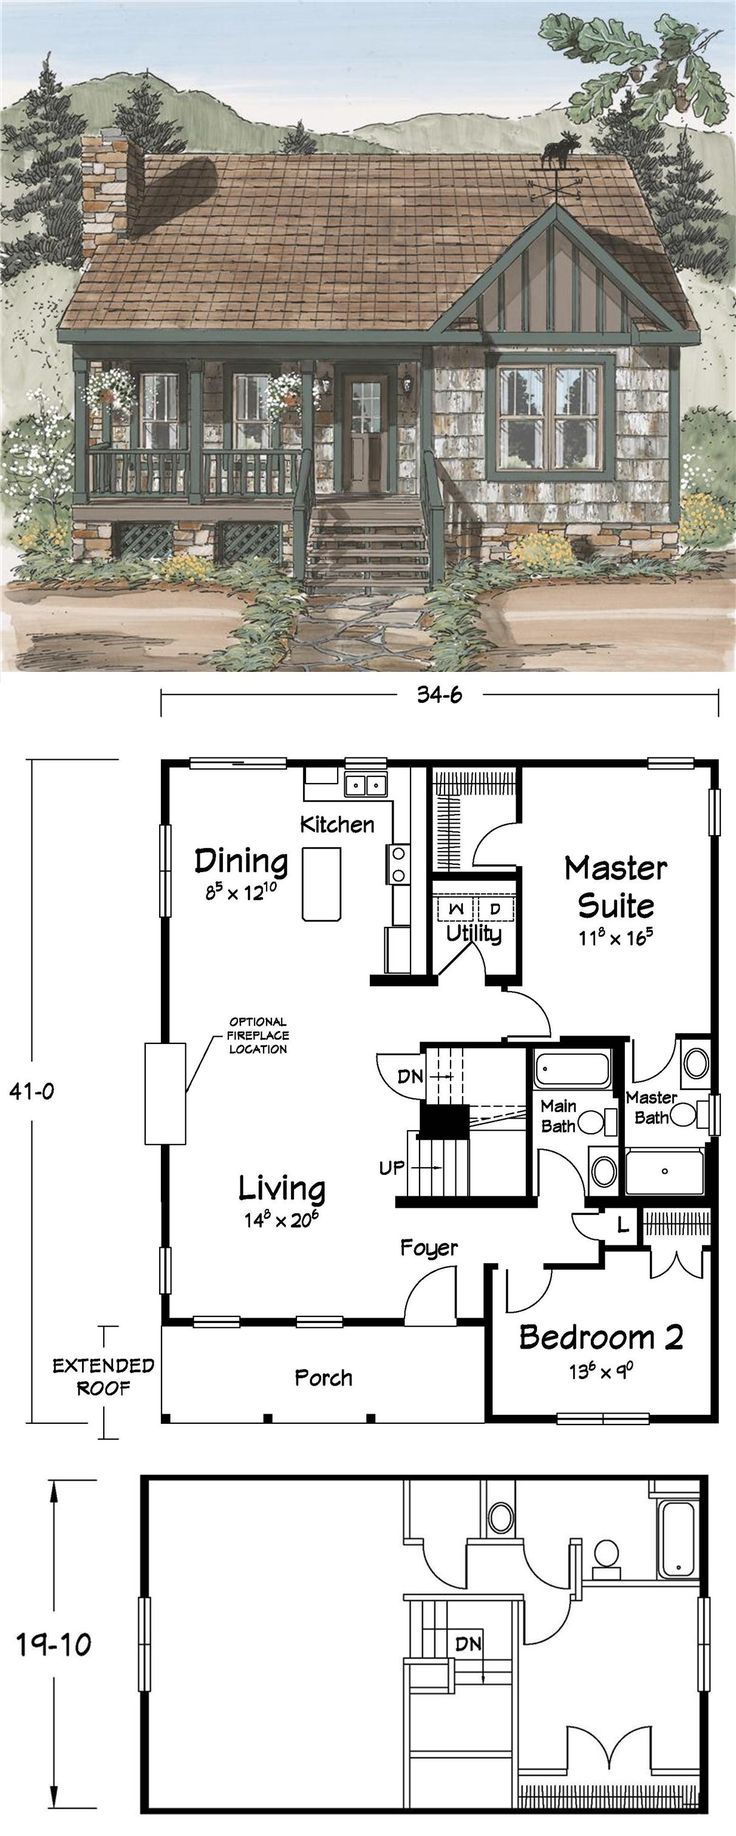 I would turn bedroom into an office/library/study/media room, and combine both bathrooms into one large master bath.